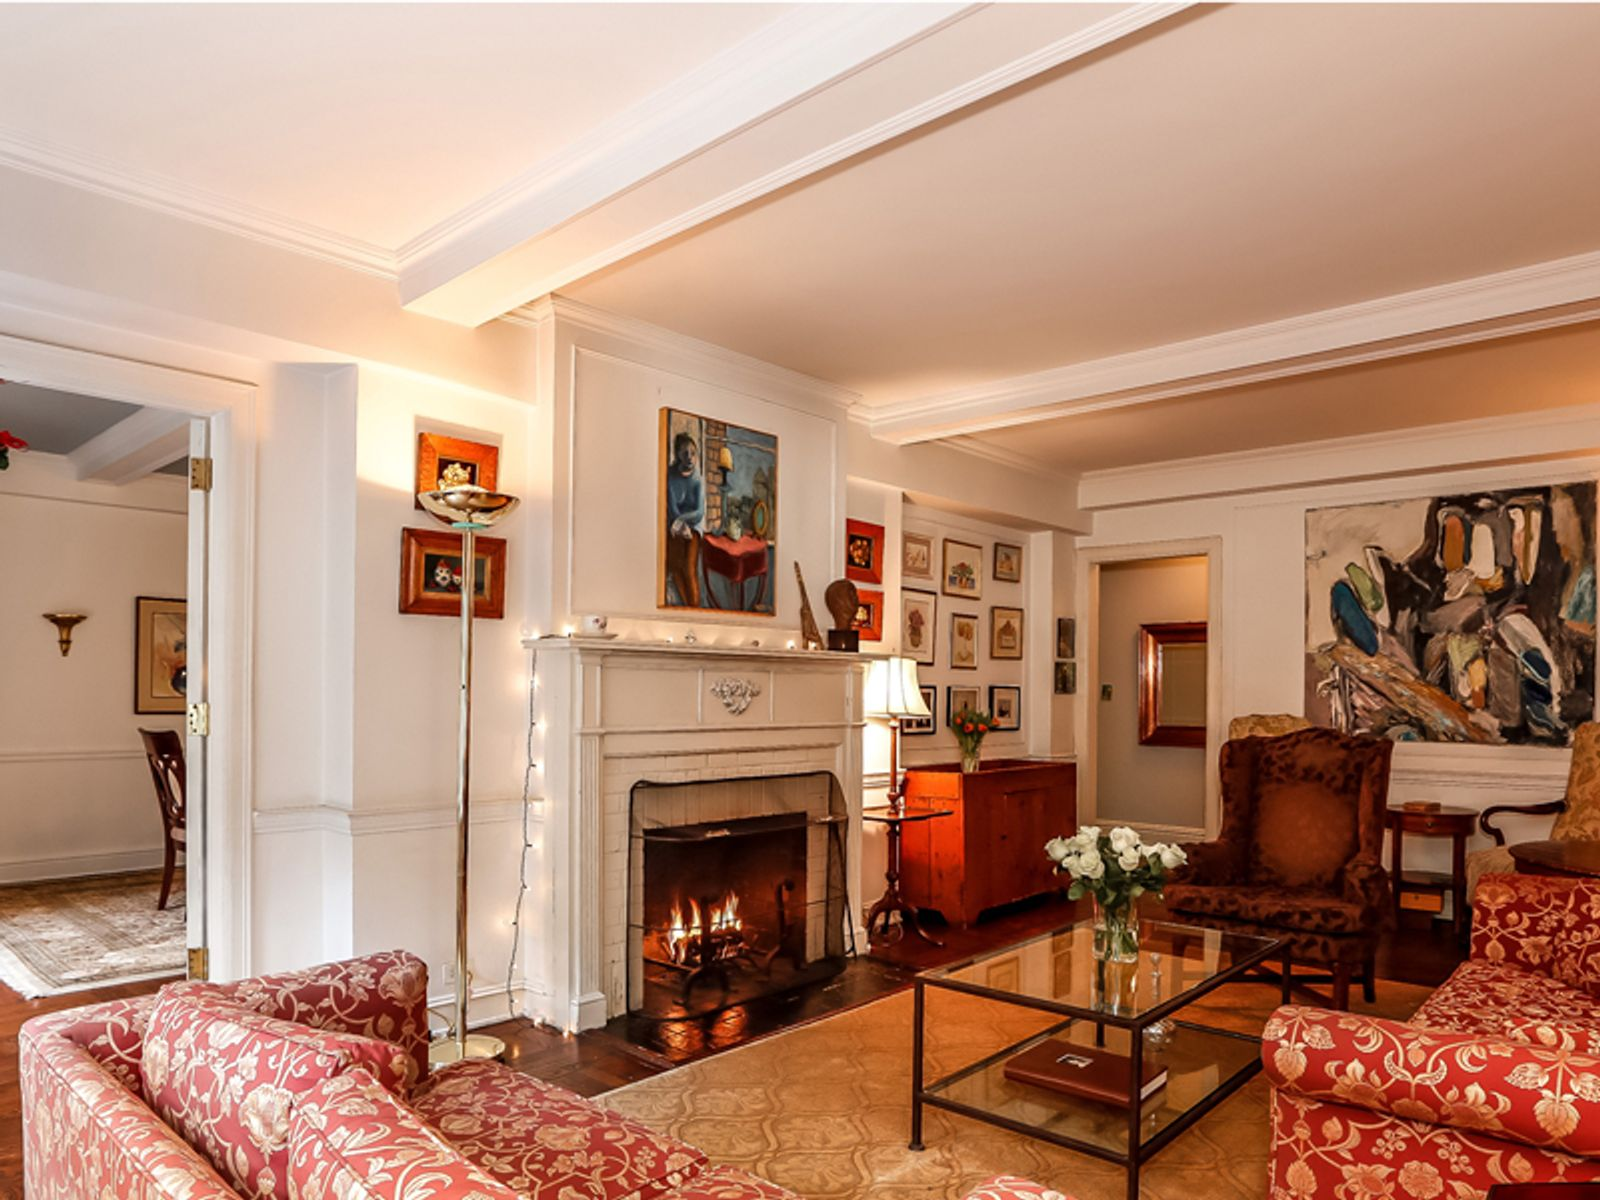 151 East 83rd Street, New York NY Cooperative - New York City Real Estate